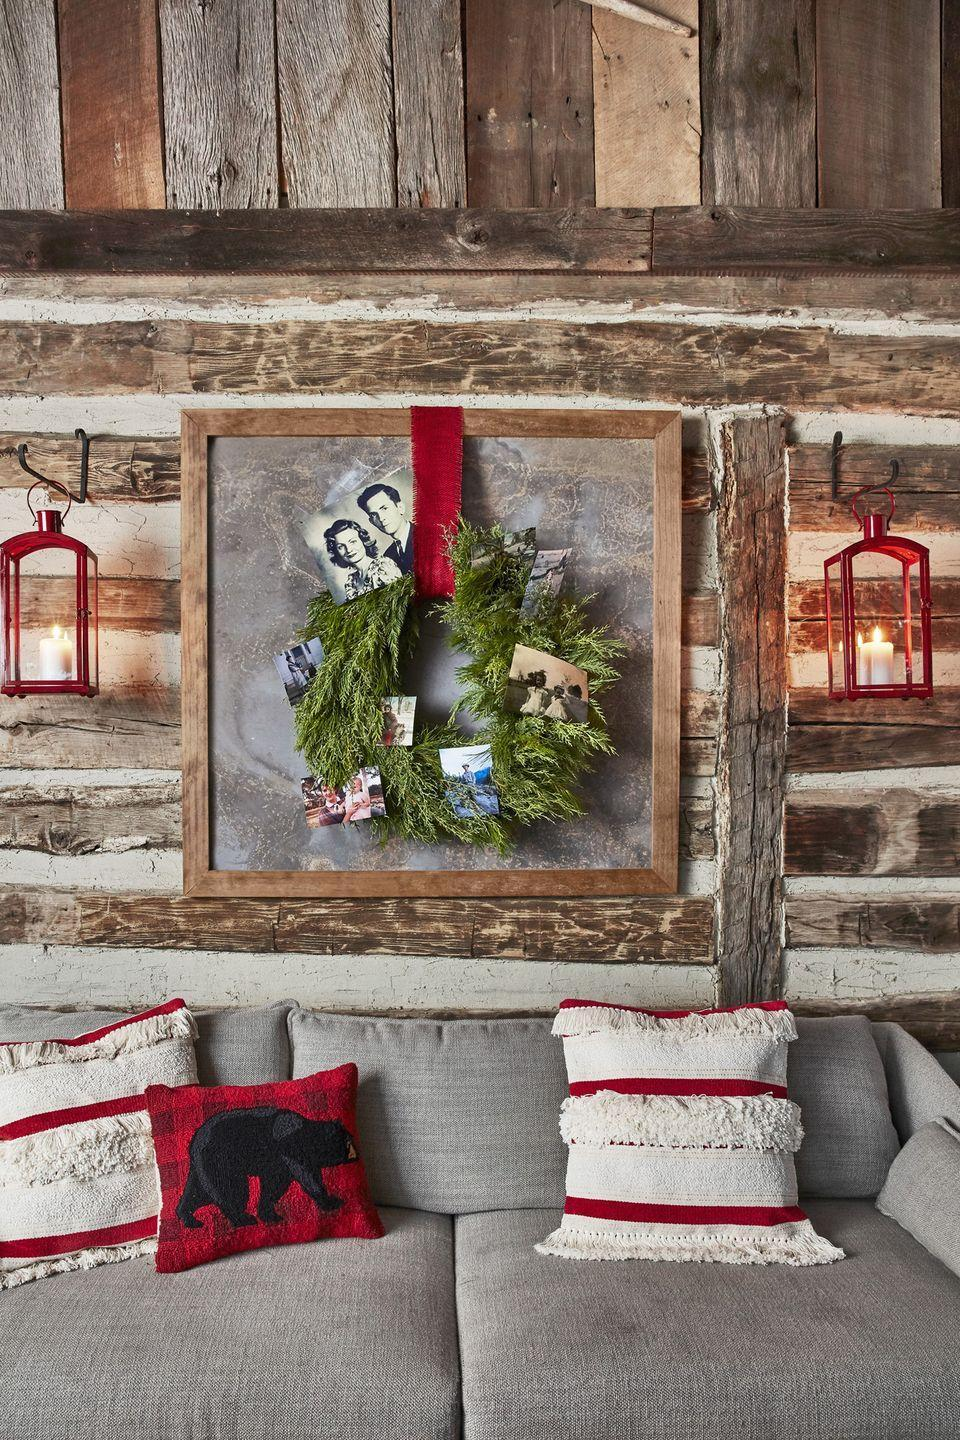 """<p>Placing family photos into your <a href=""""https://www.countryliving.com/diy-crafts/how-to/g1056/diy-wreath-ideas/"""" rel=""""nofollow noopener"""" target=""""_blank"""" data-ylk=""""slk:favorite wreath"""" class=""""link rapid-noclick-resp"""">favorite wreath</a> allows you to """"celebrate"""" the holidays with family members who are no longer living.</p><p><a class=""""link rapid-noclick-resp"""" href=""""https://www.amazon.com/National-Tree-Crestwood-Bristles-CW7-306-24W-1/dp/B00EC820TA?tag=syn-yahoo-20&ascsubtag=%5Bartid%7C10050.g.1247%5Bsrc%7Cyahoo-us"""" rel=""""nofollow noopener"""" target=""""_blank"""" data-ylk=""""slk:SHOP CHRISTMAS WREATHS"""">SHOP CHRISTMAS WREATHS</a></p>"""